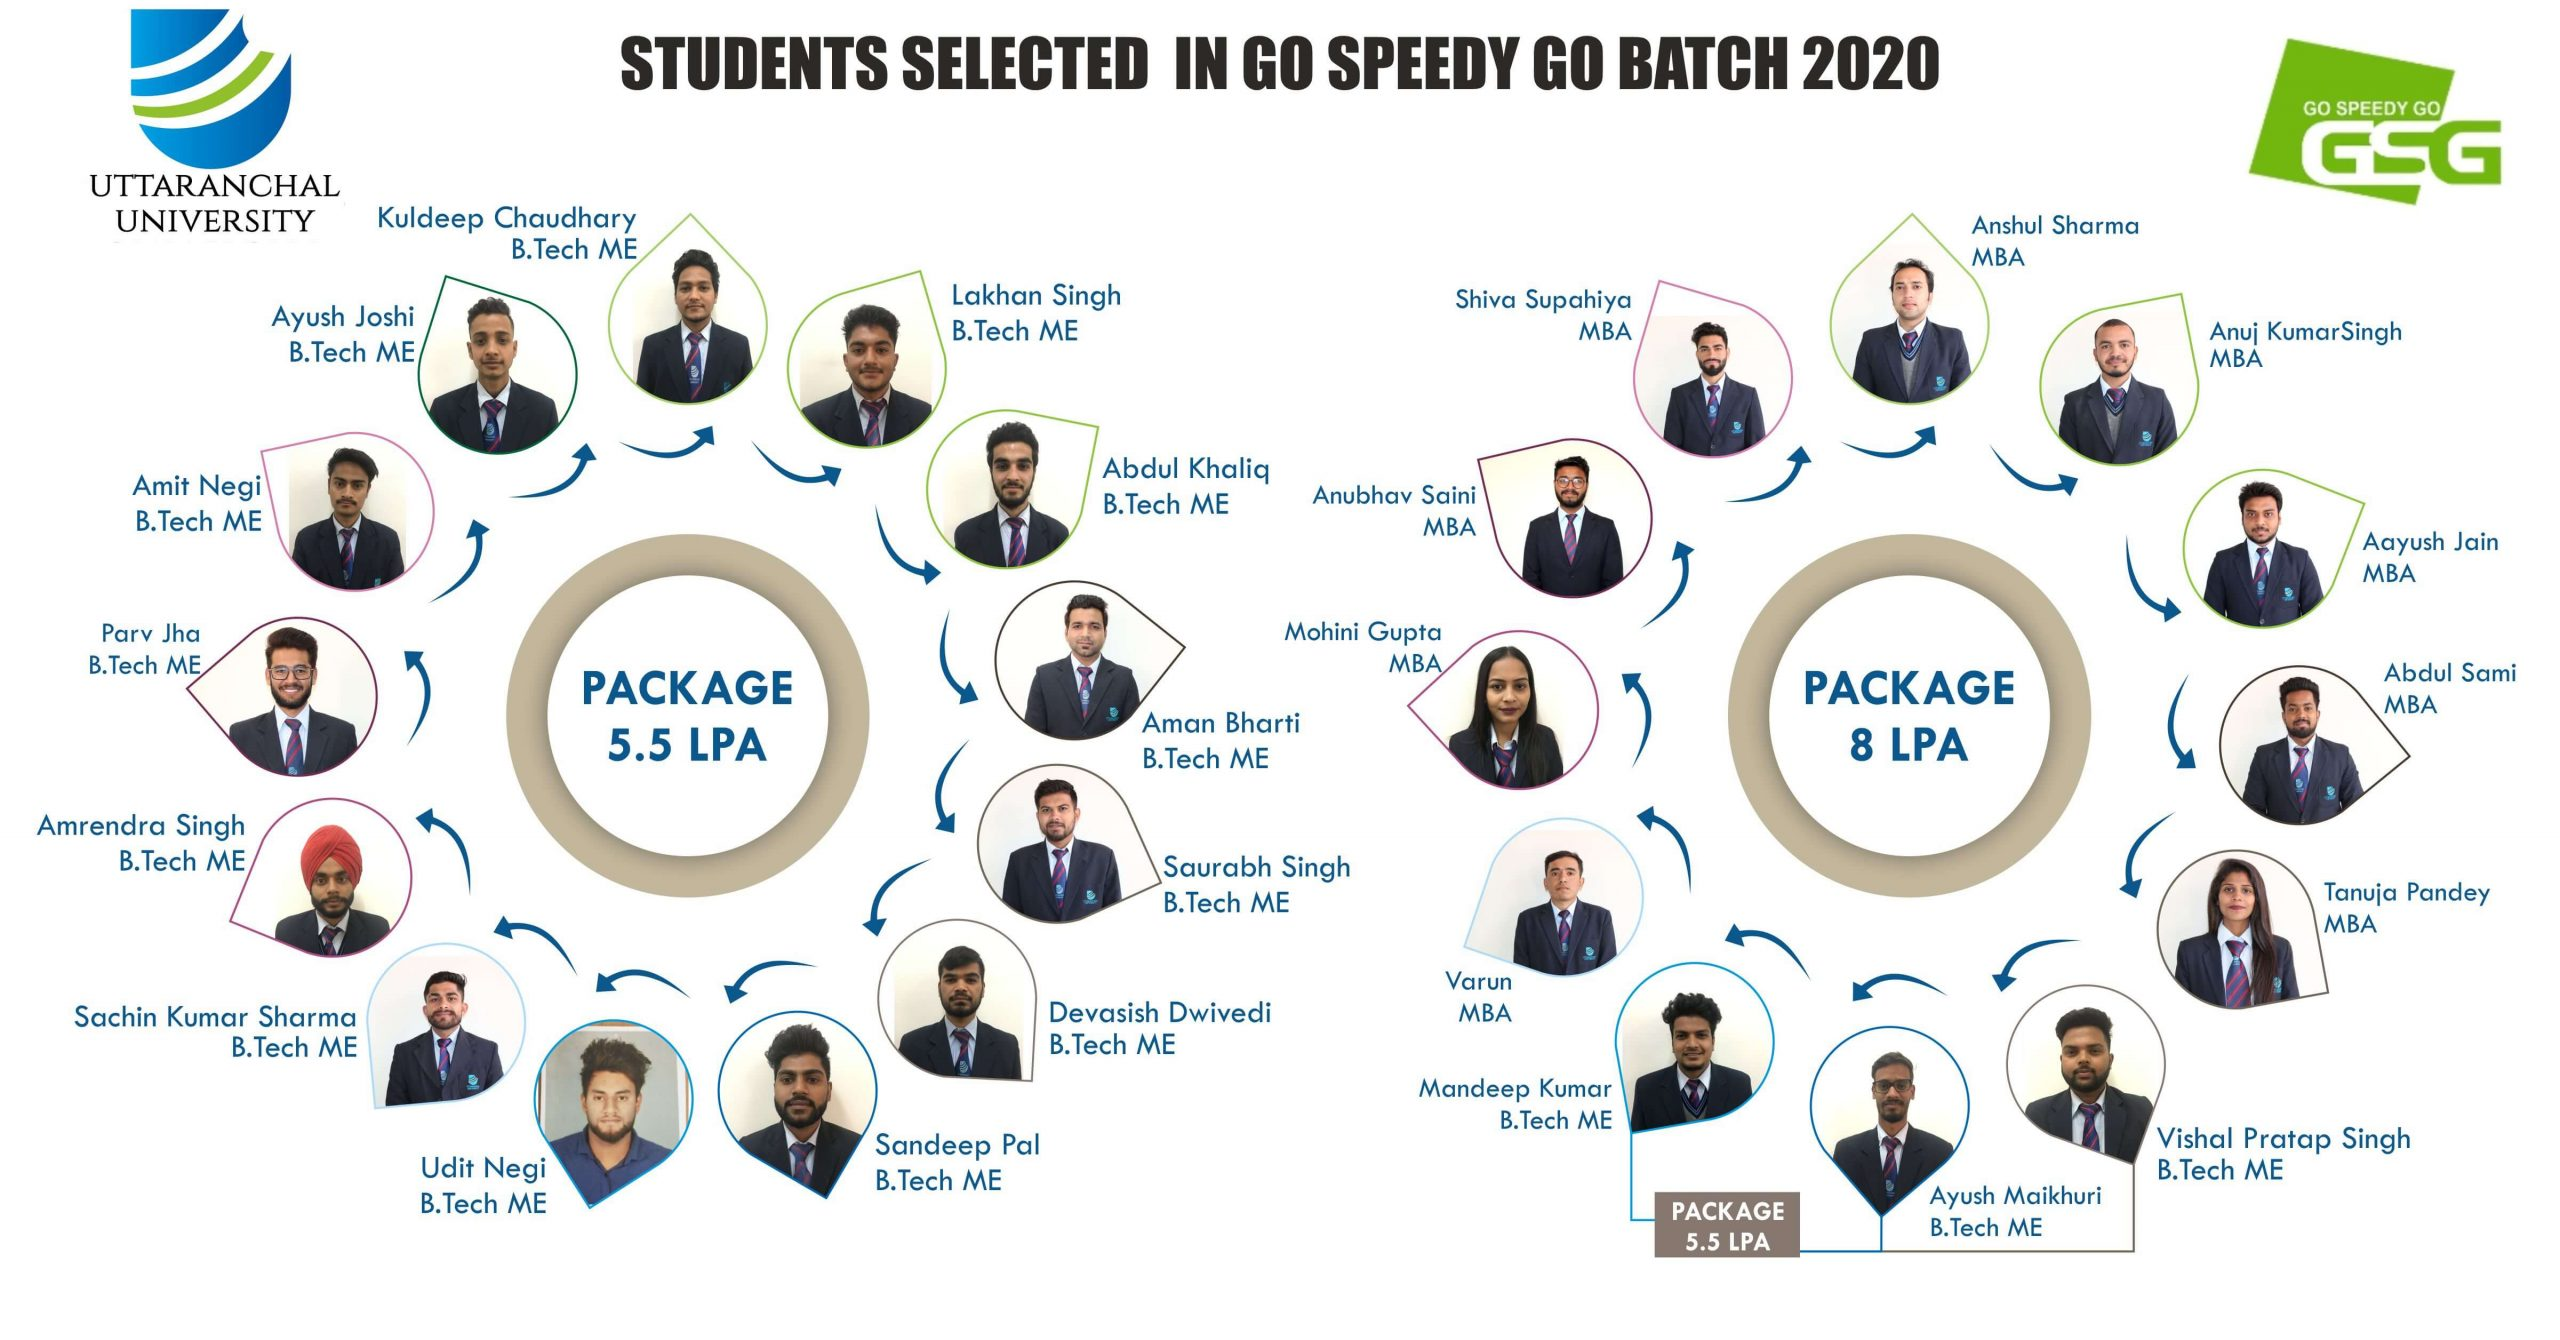 Uttaranchal University congratulates all students for being selected in Go Speedy Go with a pay package of CTC 8 LPA And 5.5 LPA. We wish for your great success in your future endeavors.